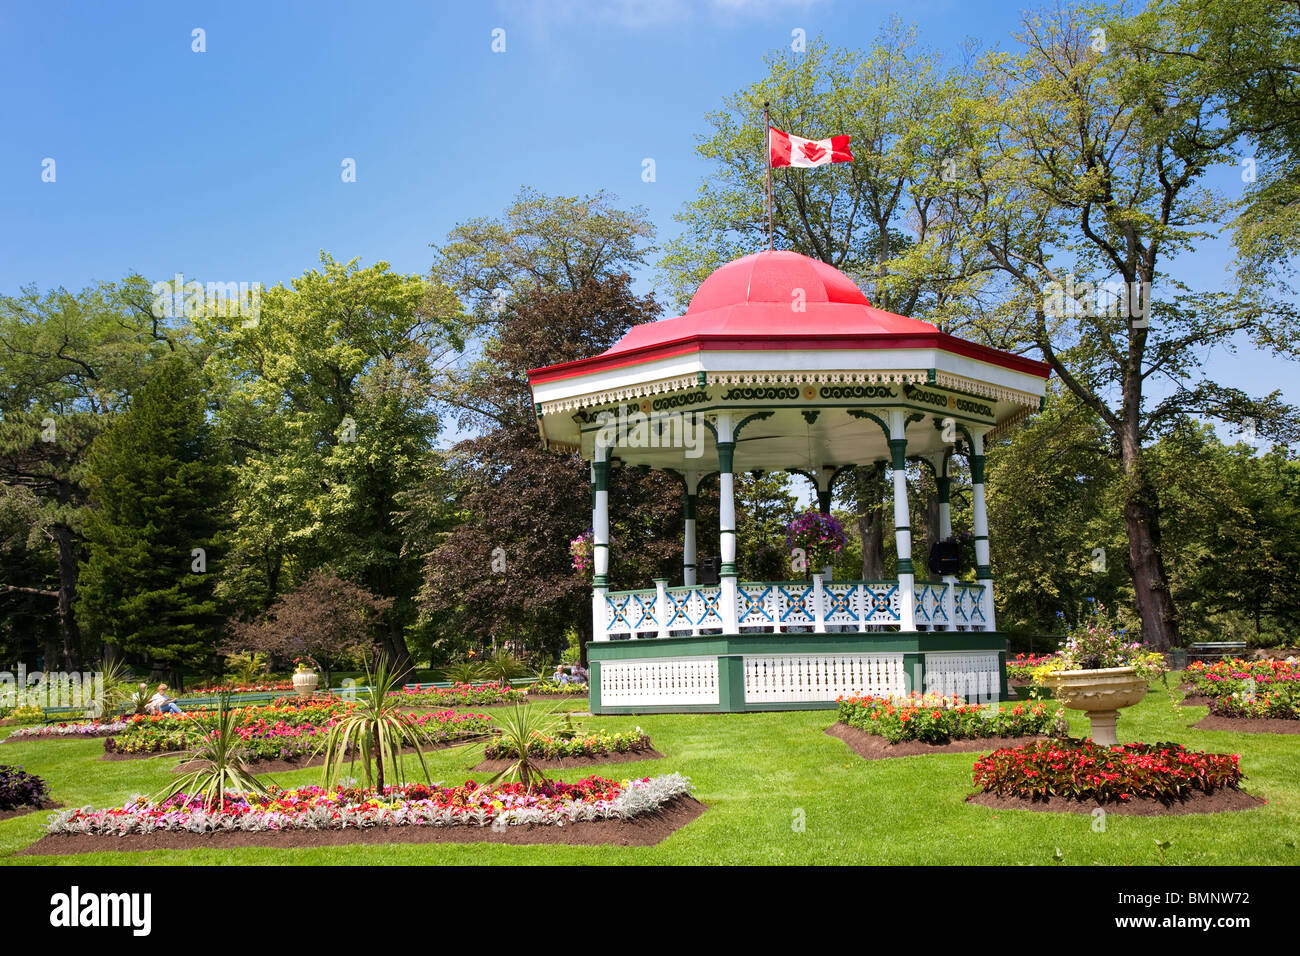 The bandstand or gazebo in the Halifax Public Gardens in Halifax, Nova Scotia. Stock Photo